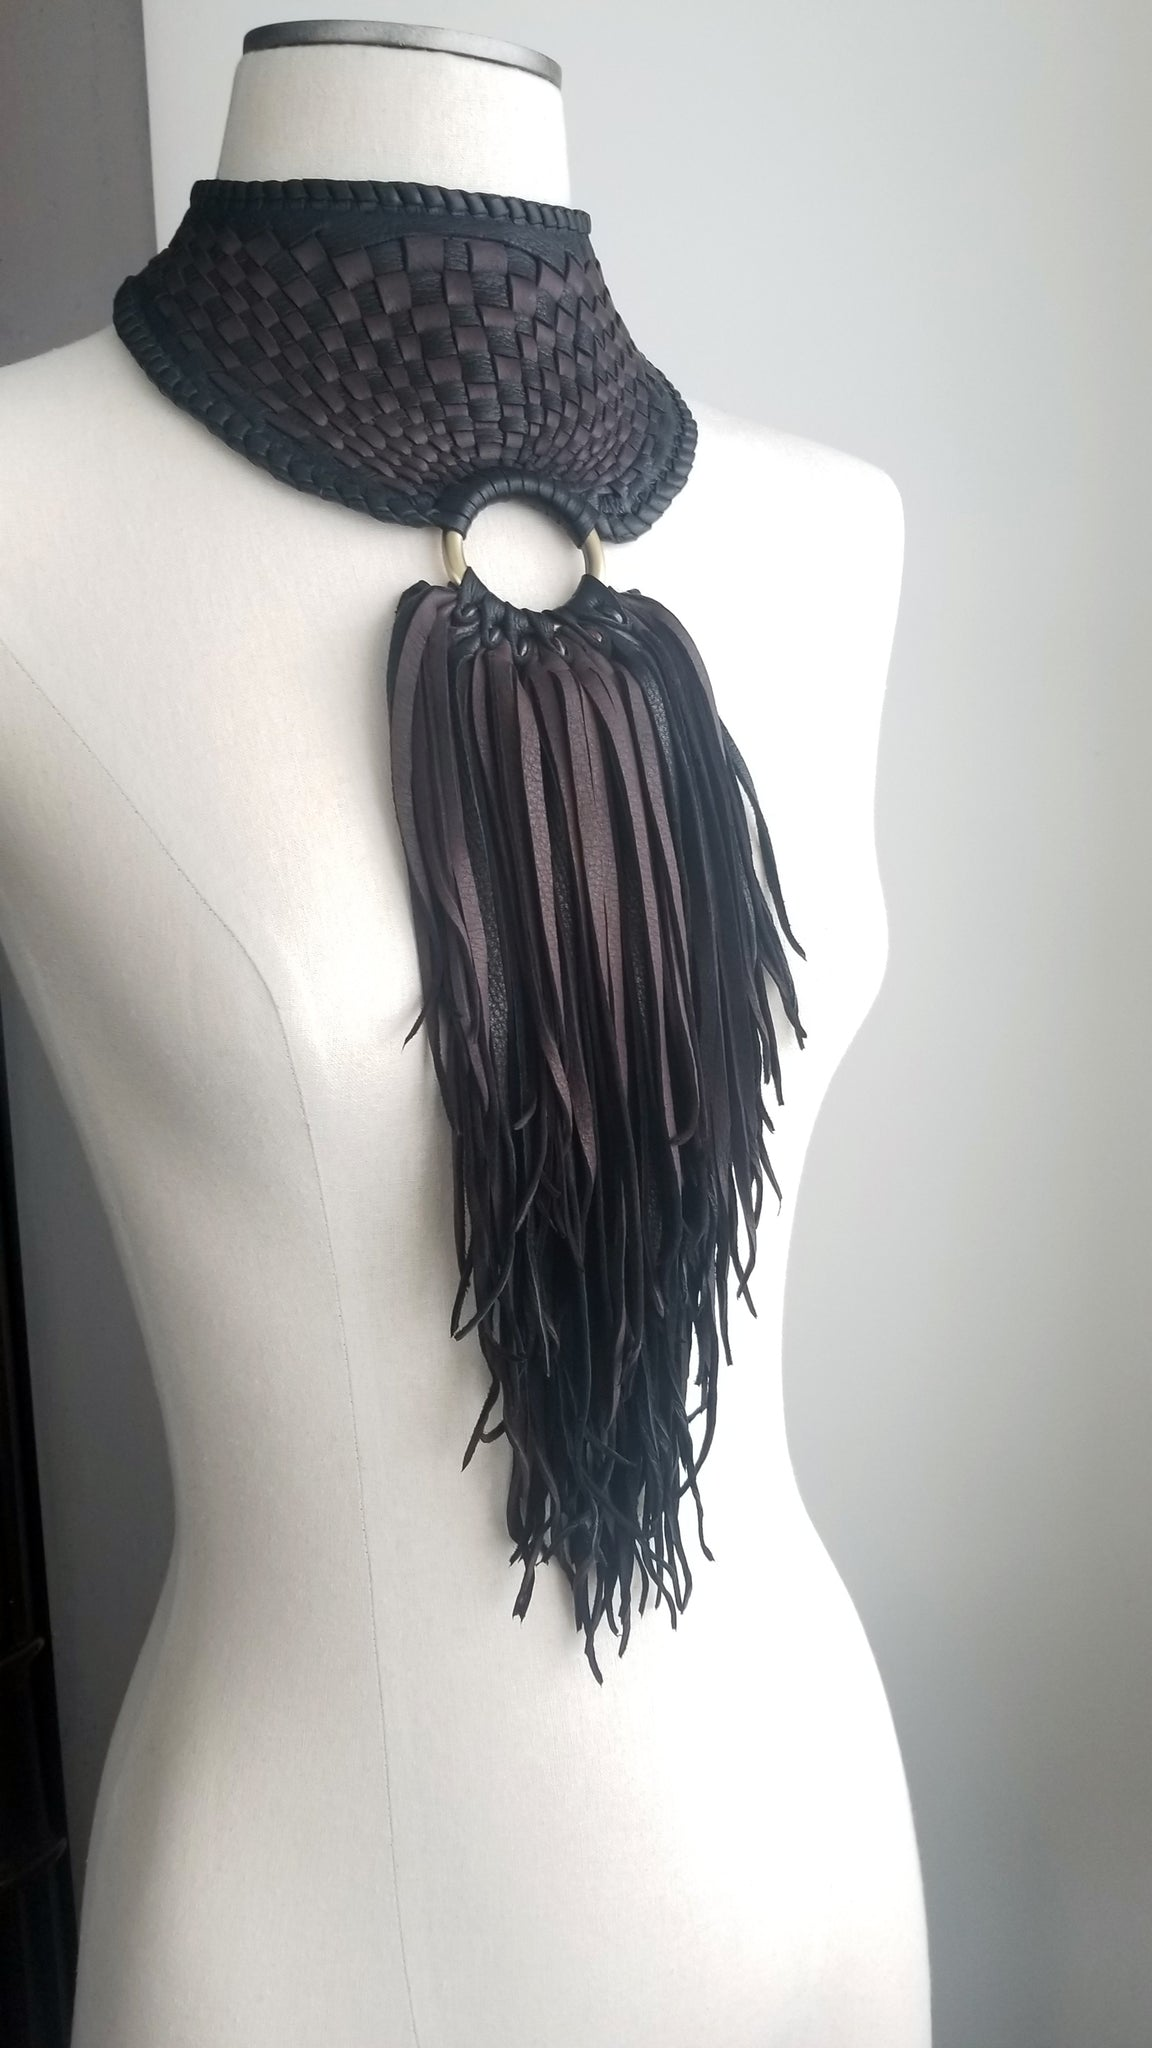 Zanta African Inspired, Braided Leather Statement Necklace, Bib Neckpiece, woven collar, fringe and tassels, on a dress form